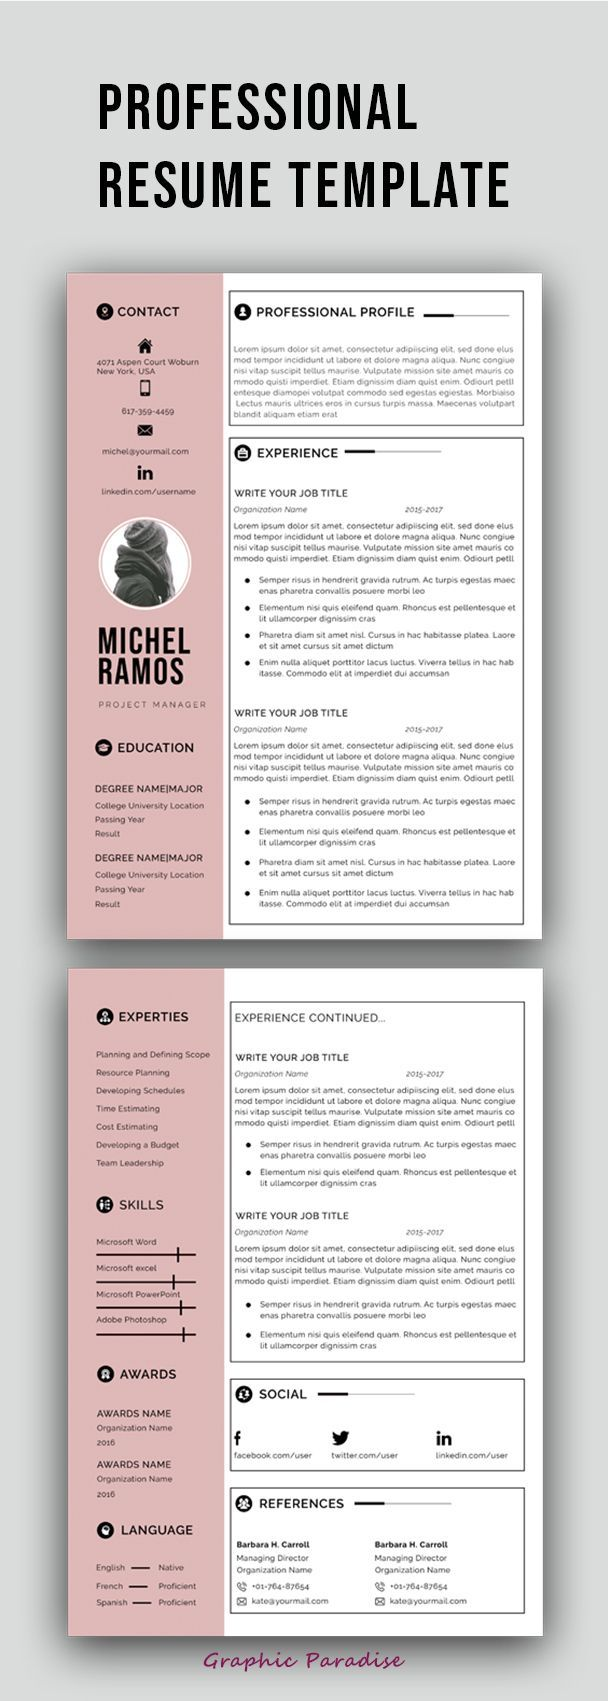 Laura is mobile friendly, clean code, modern layout and ready for easy customization. Pin By Valentina Bautista On Curriculum Vitae Portfolio In 2021 Free Resume Template Word Resume Template Professional Modern Resume Template Free